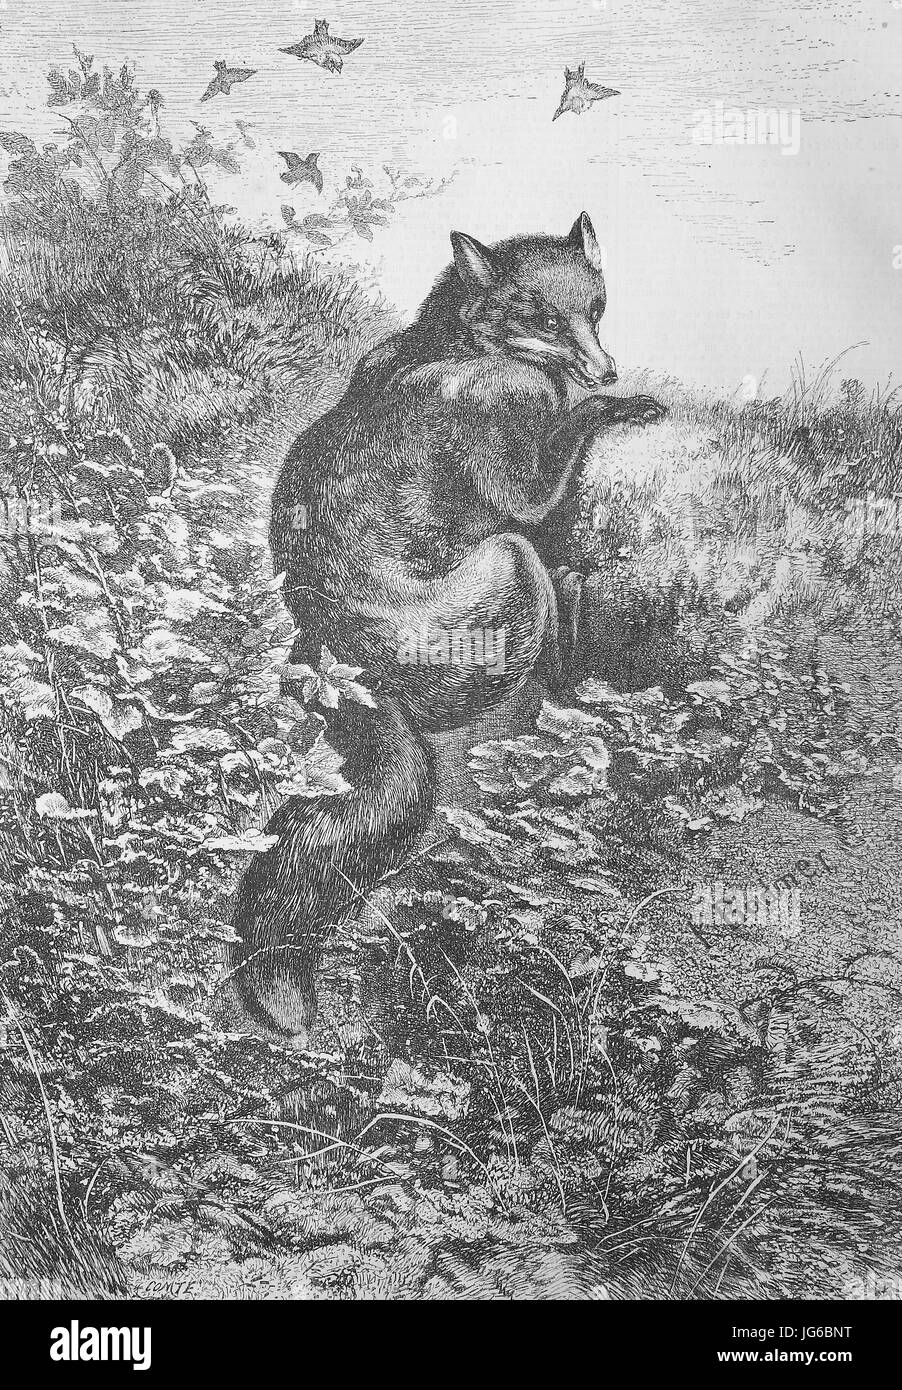 Digital improved:, illustration of a red fox, Vulpes vulpes, in the nature, illustration from the 19th century Stock Photo